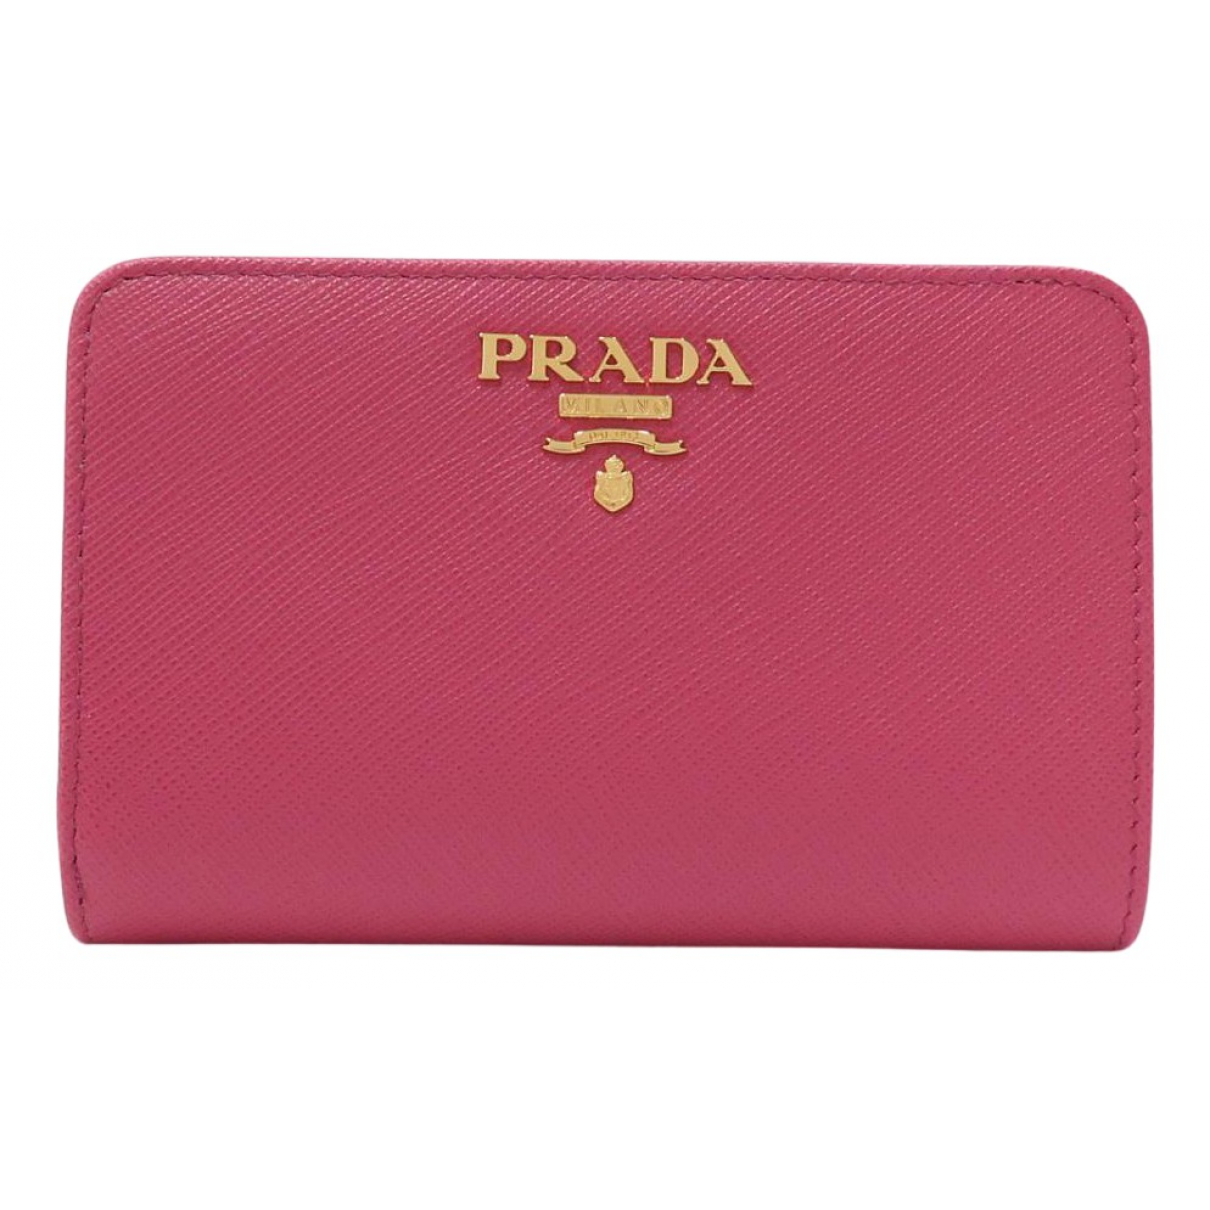 Prada N Pink Leather wallet for Women N